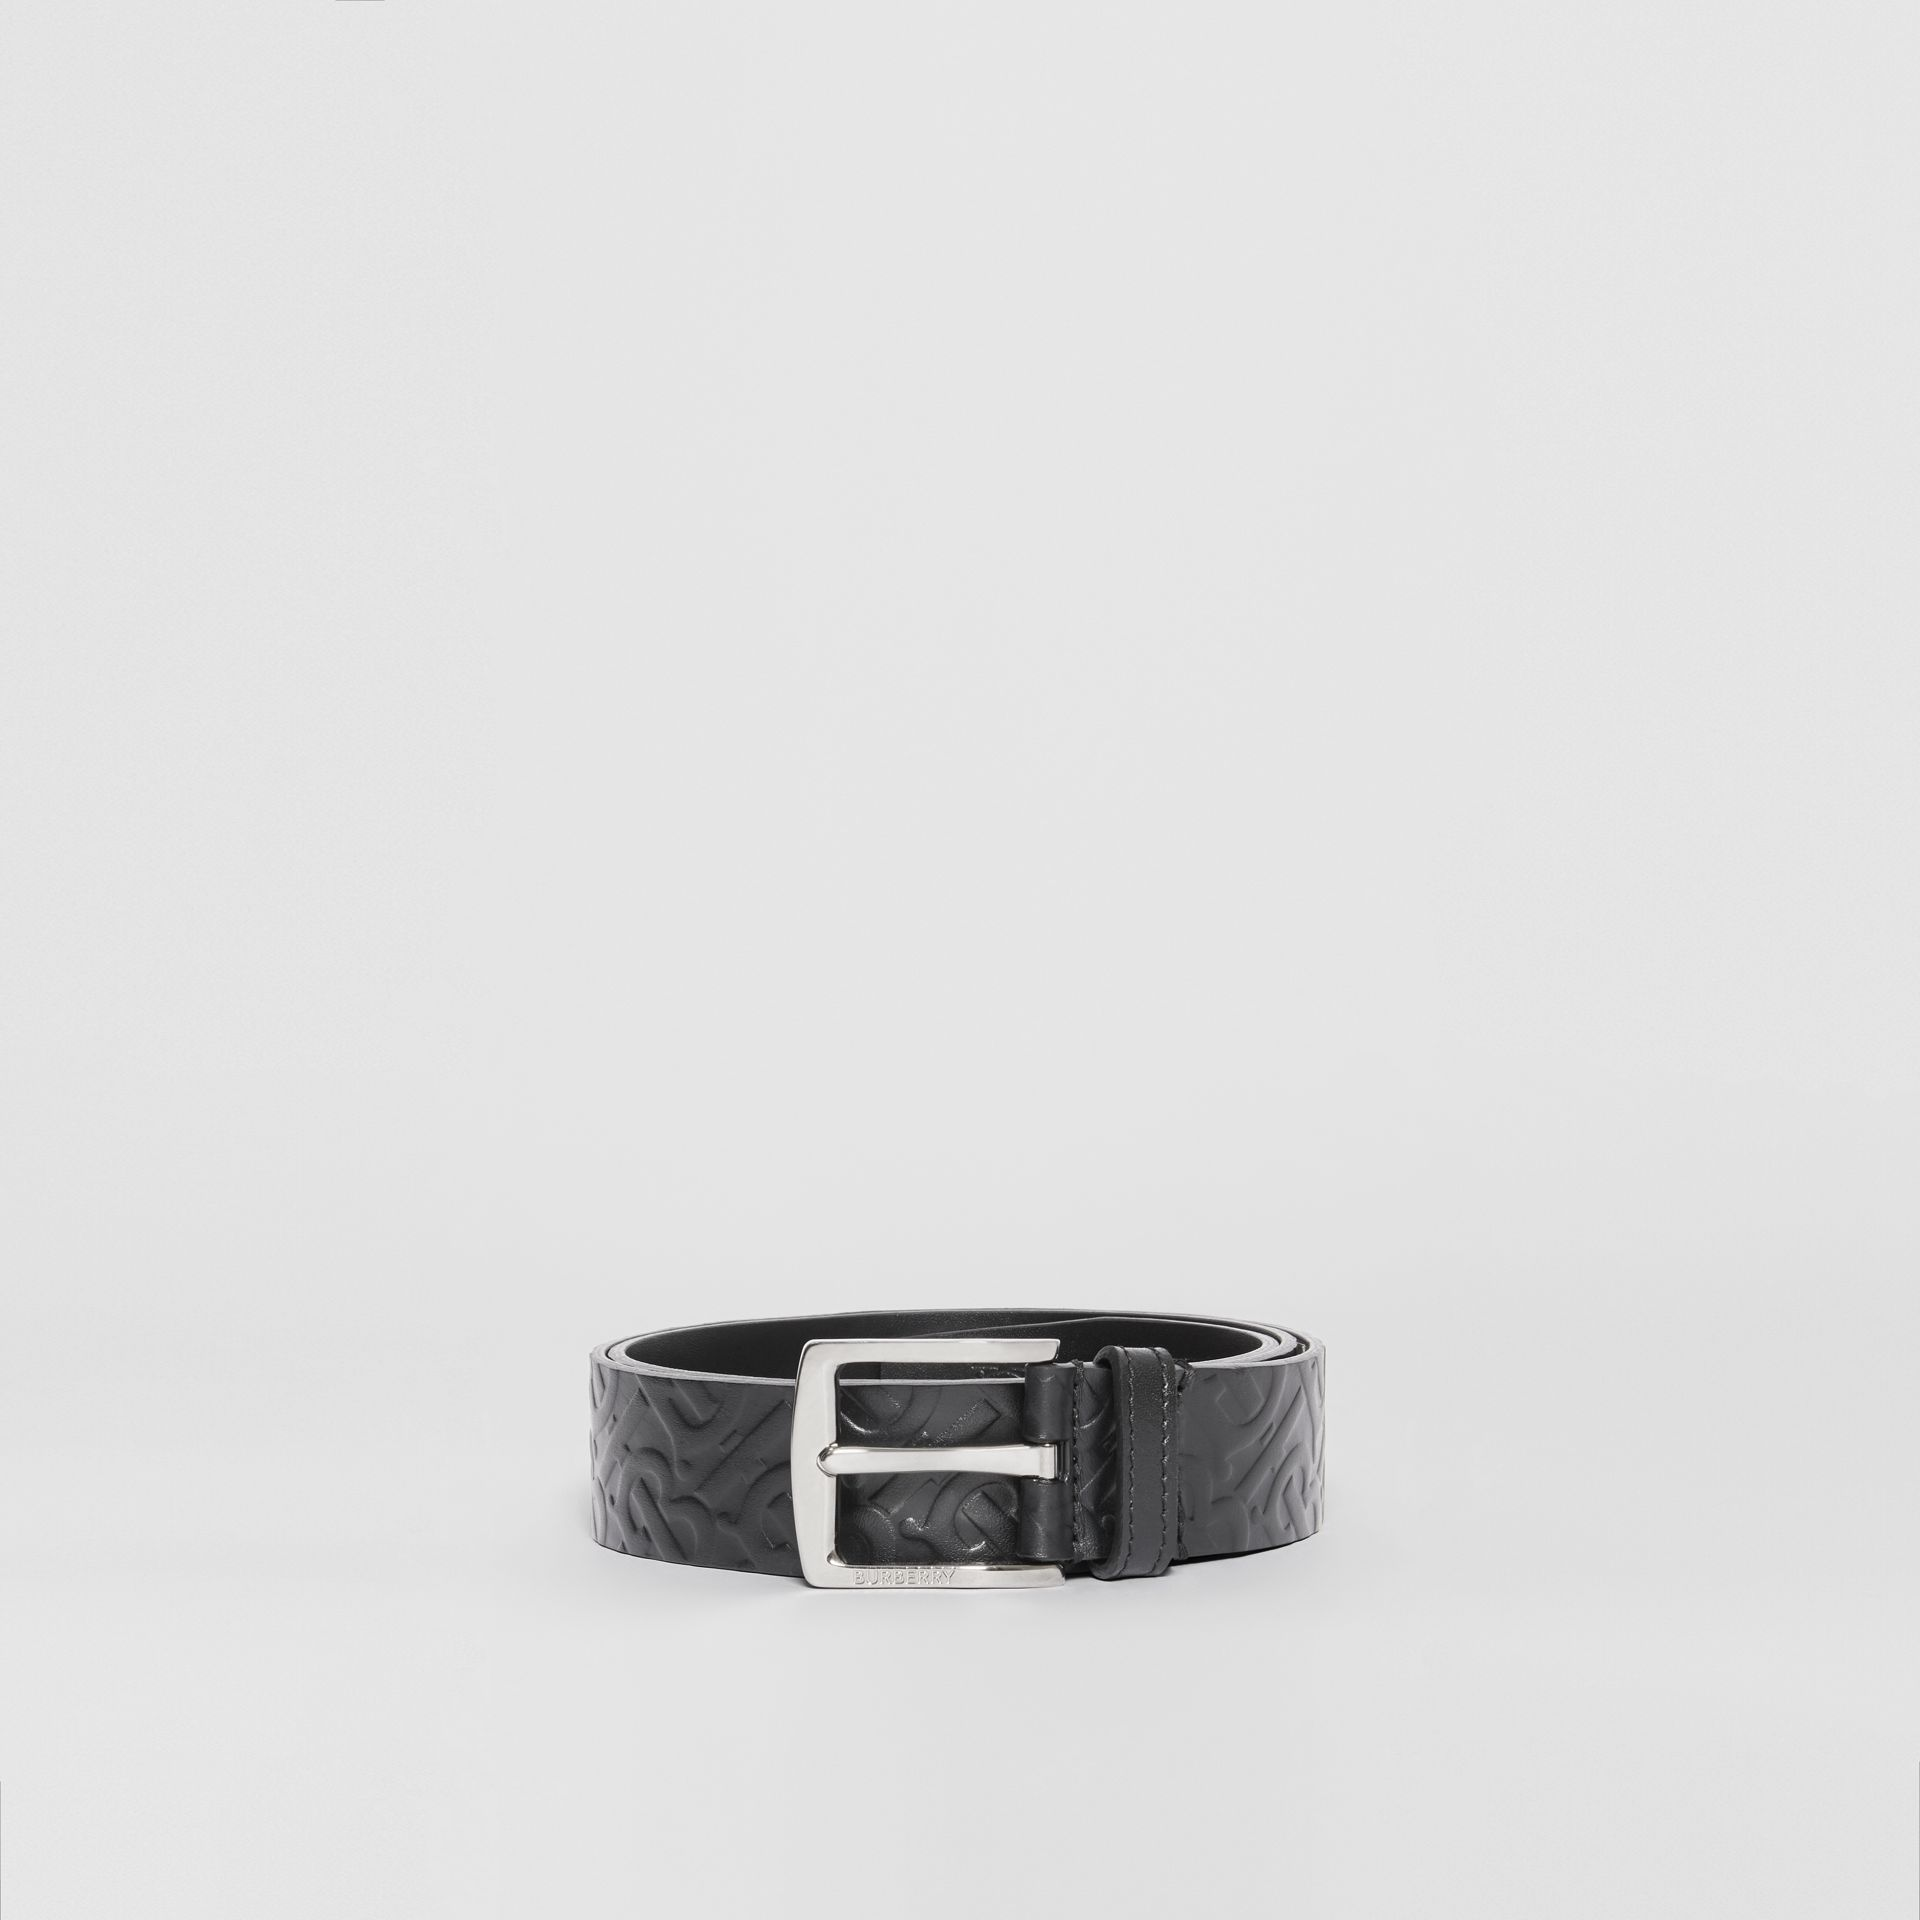 Monogram Leather Belt in Black - Men | Burberry - gallery image 3